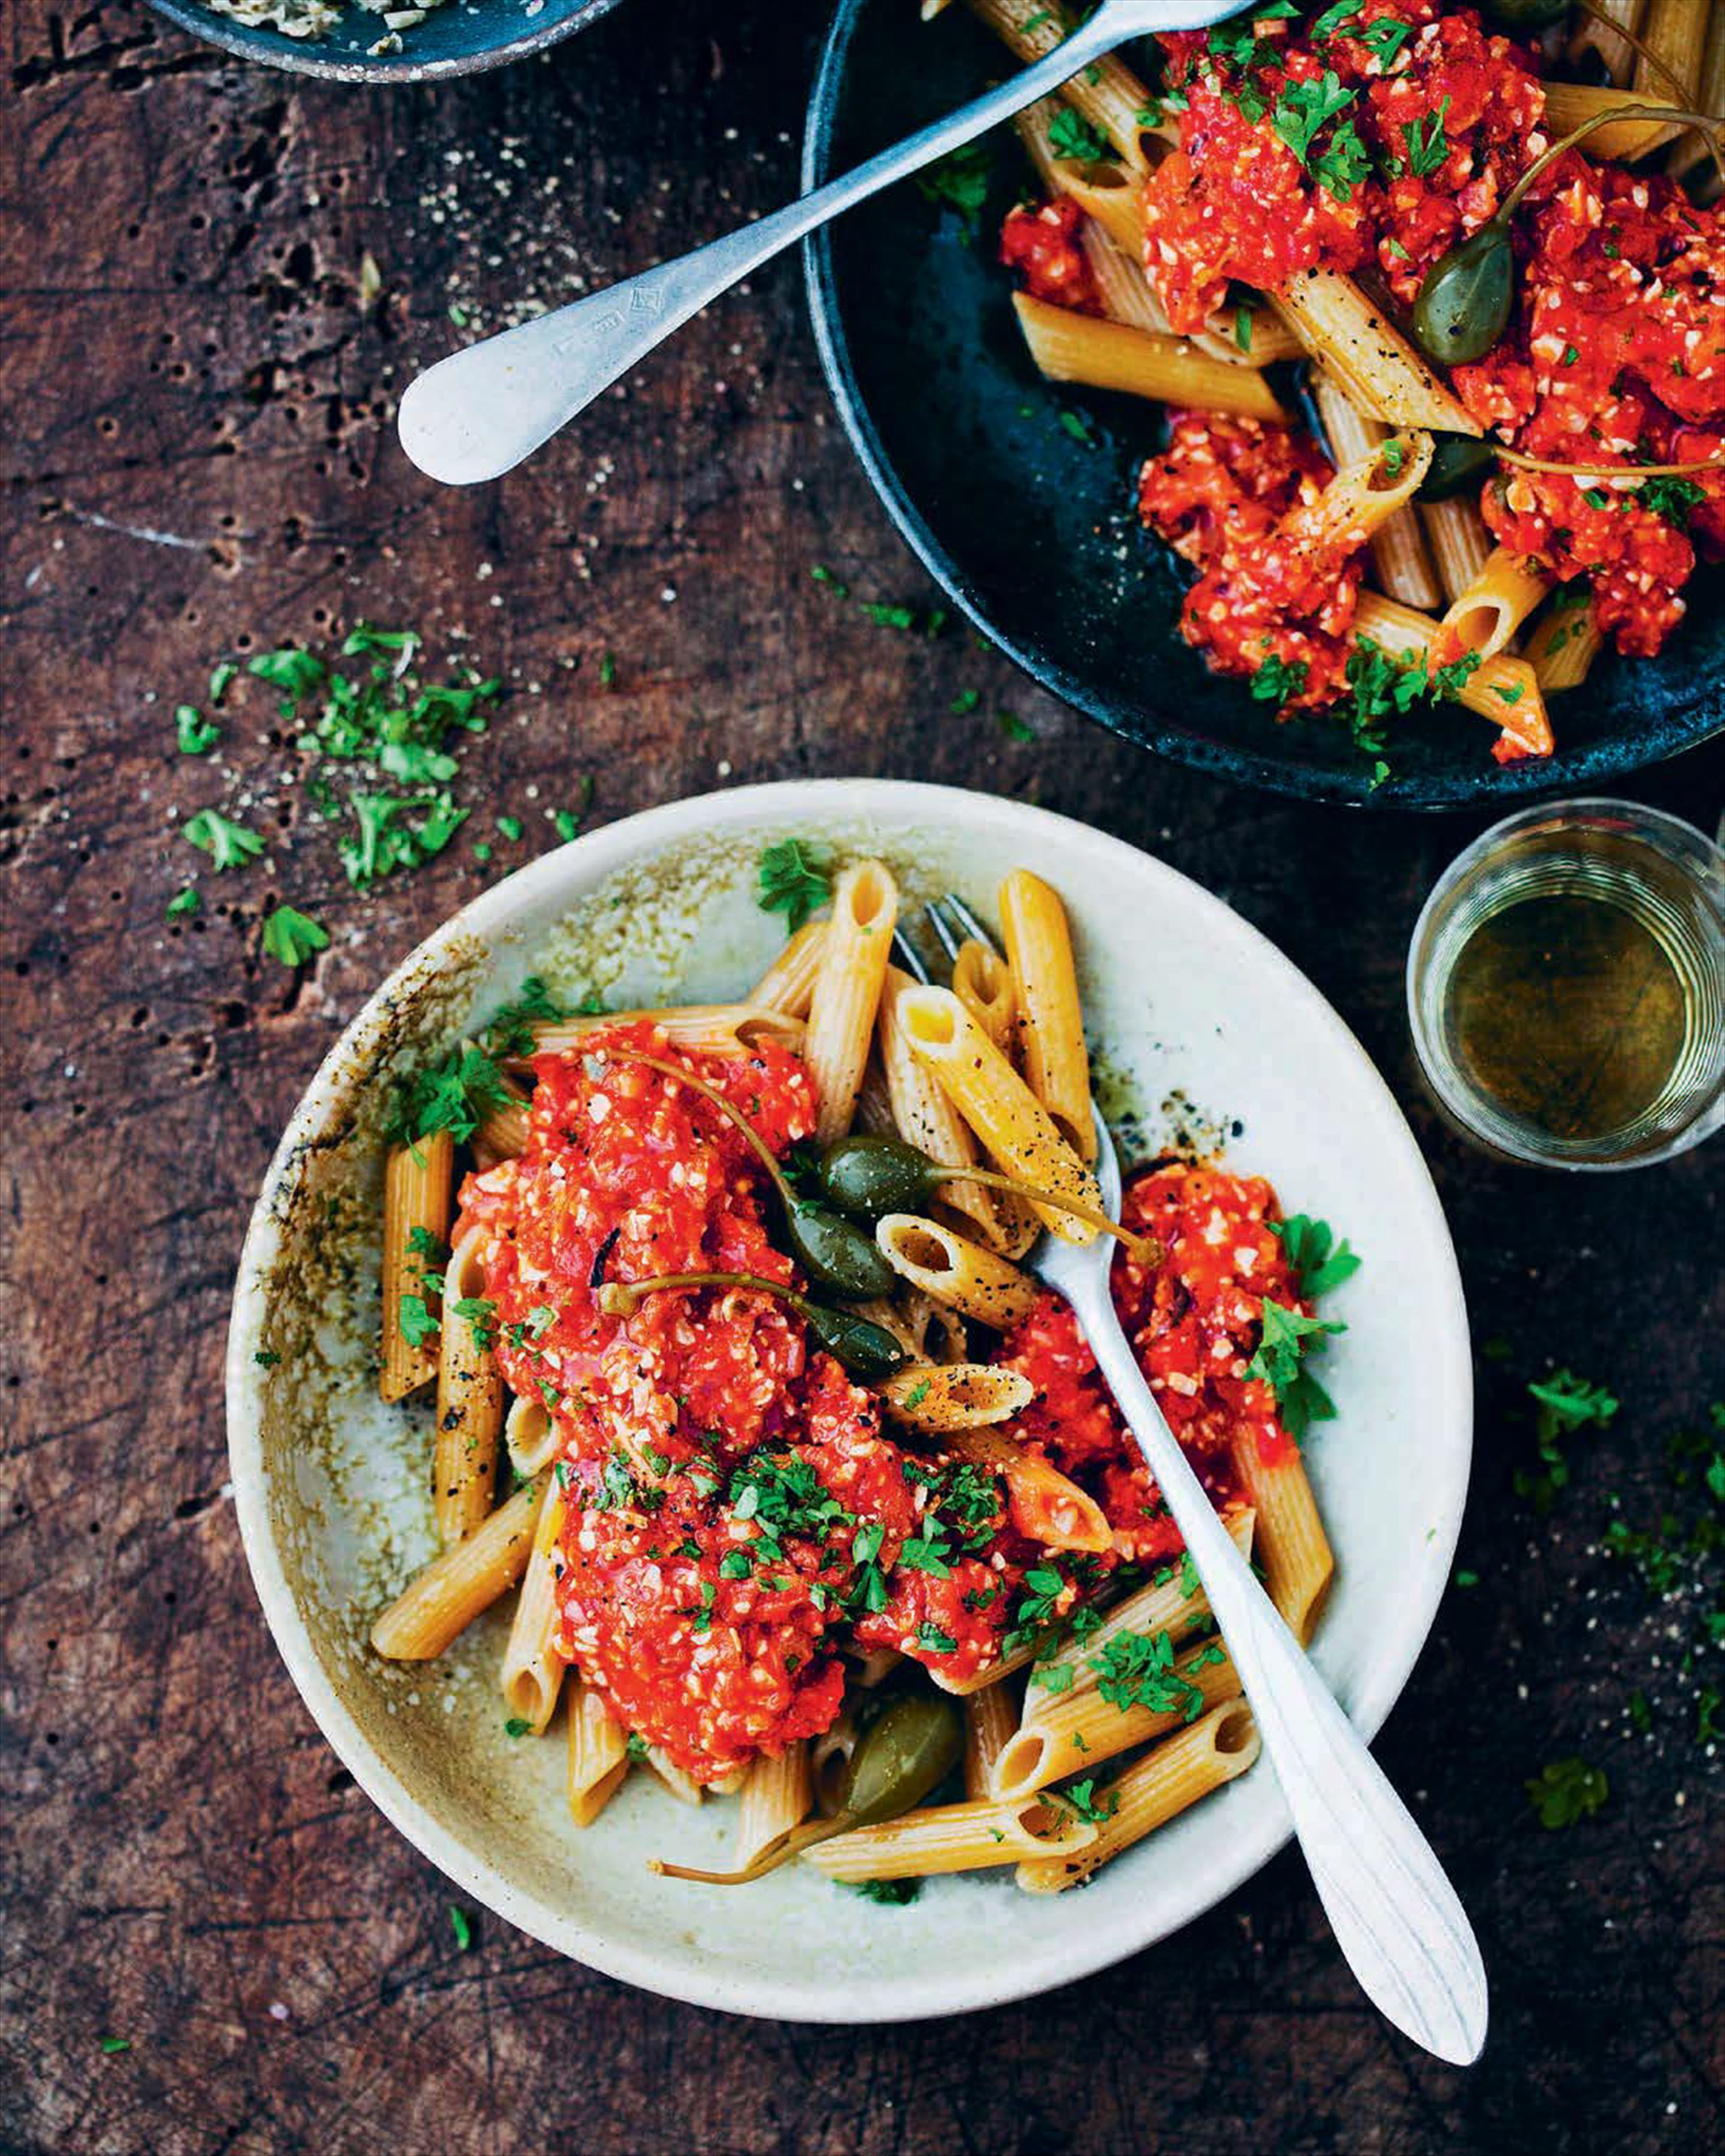 Penne al Pomodoro with Vegan 'Tuna'